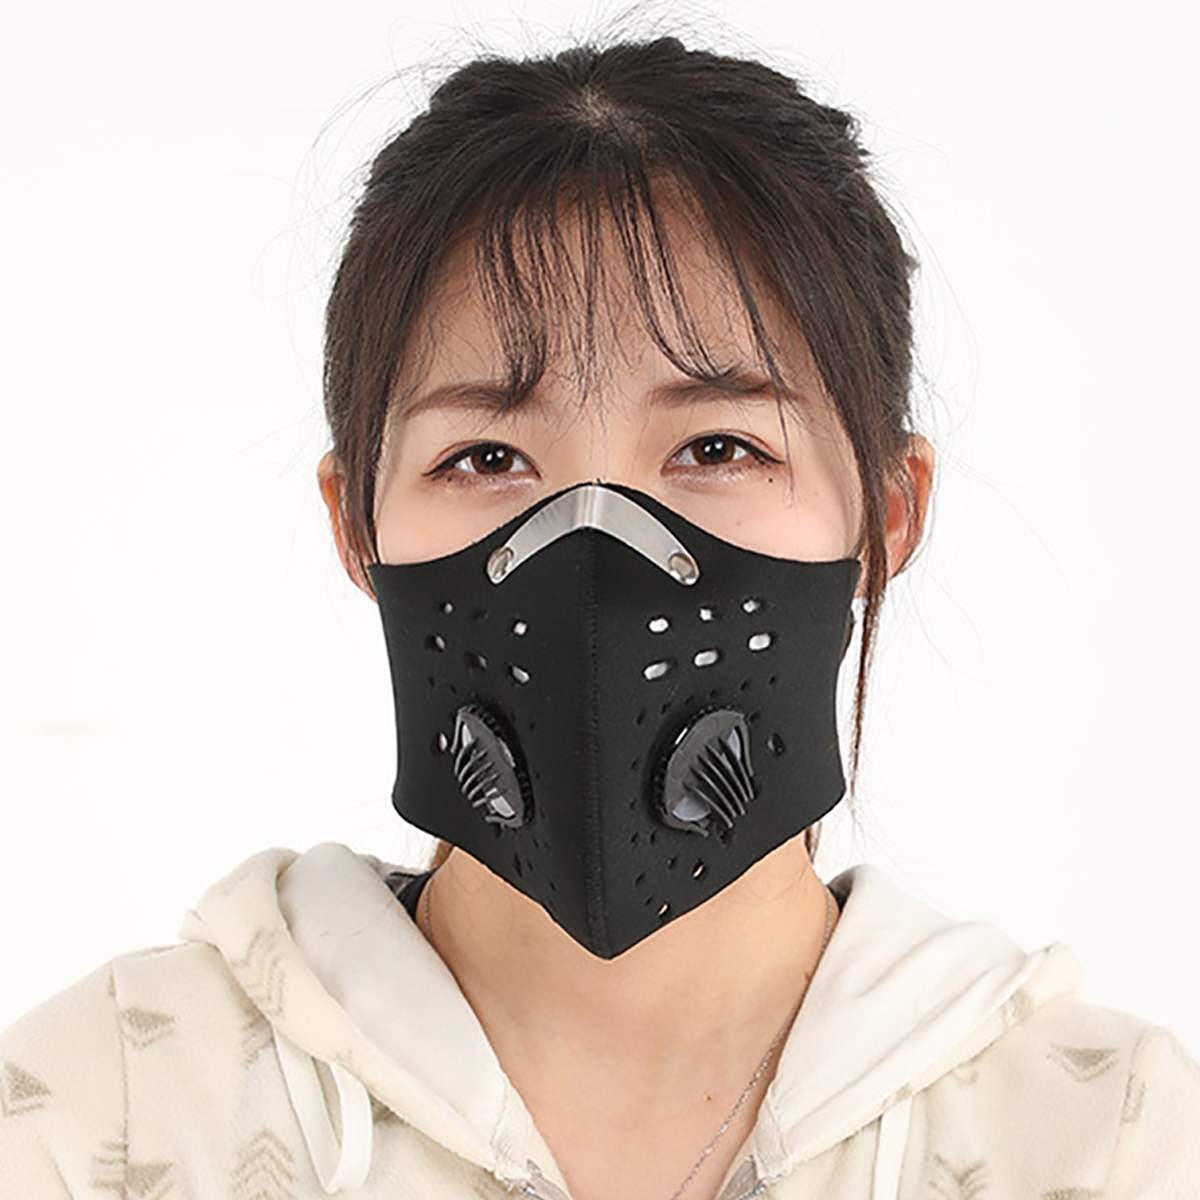 In Stock 5 Carbon Filter Non-disposable Mask Anti Virus/Dust/PM2.5/Fog/Haze Mask Bacteria Proof Mask Personal Mouth Protective